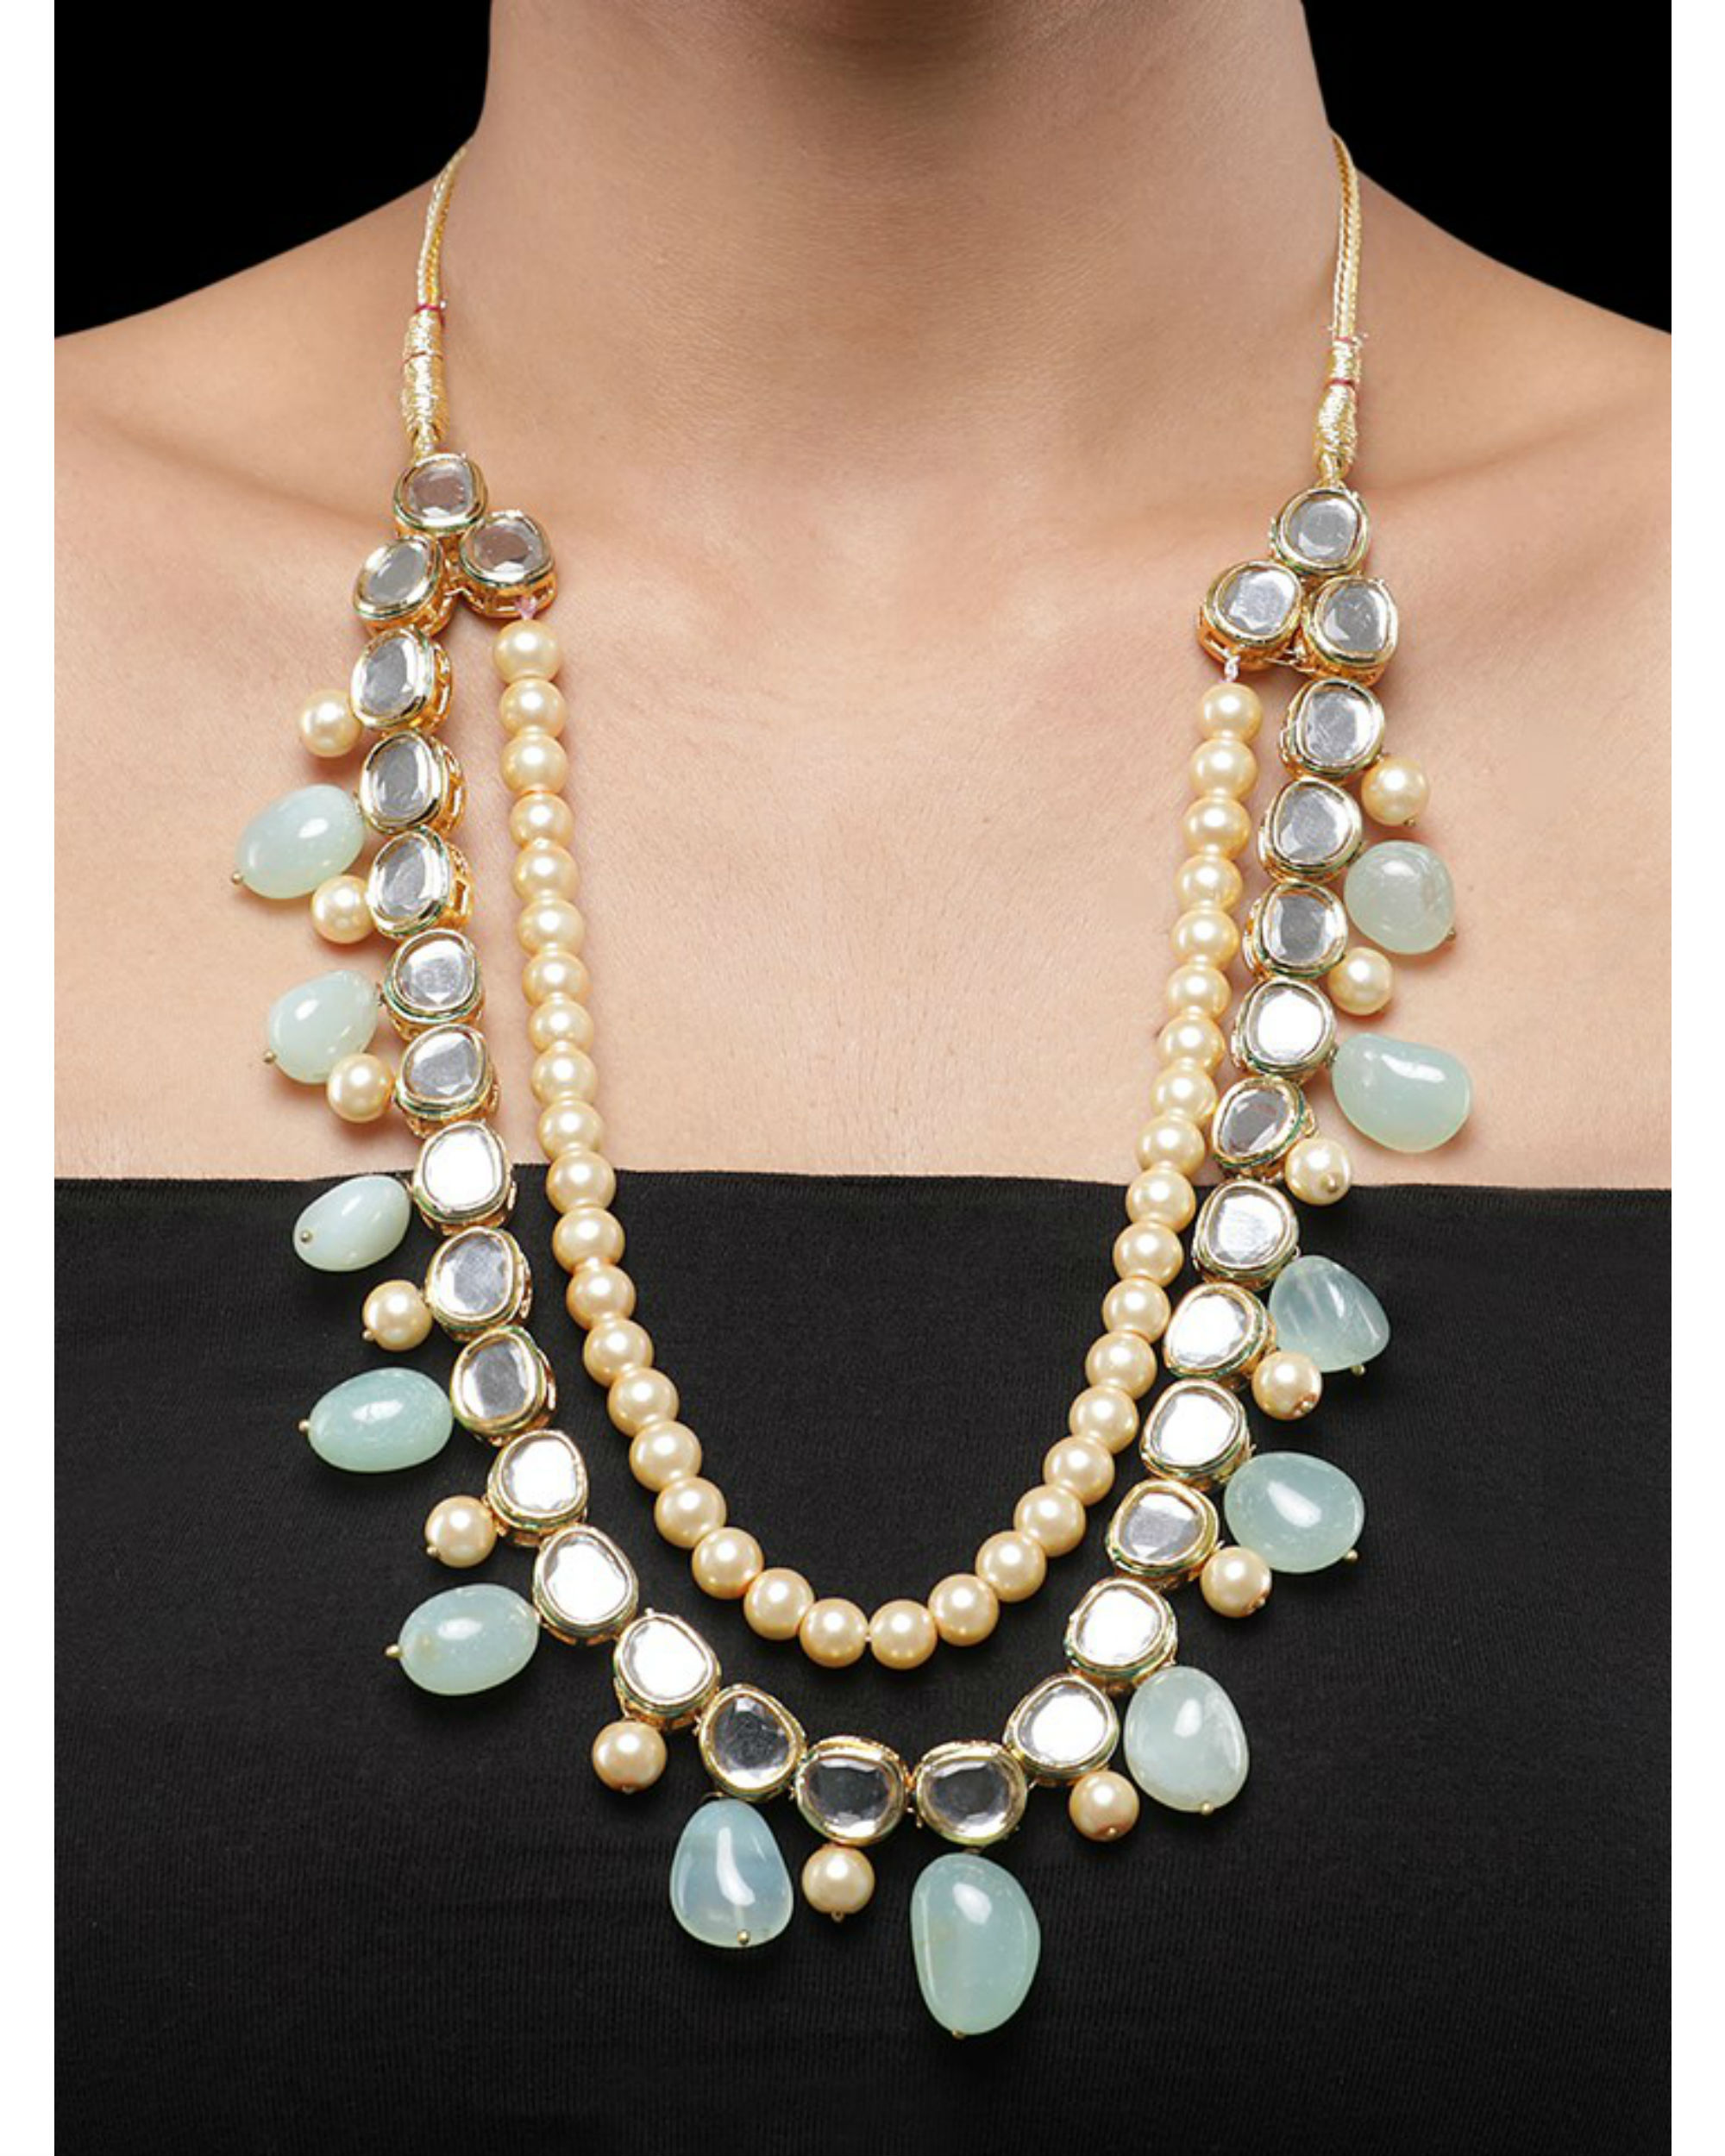 Kundan and Mint Green Natural Stones Necklace